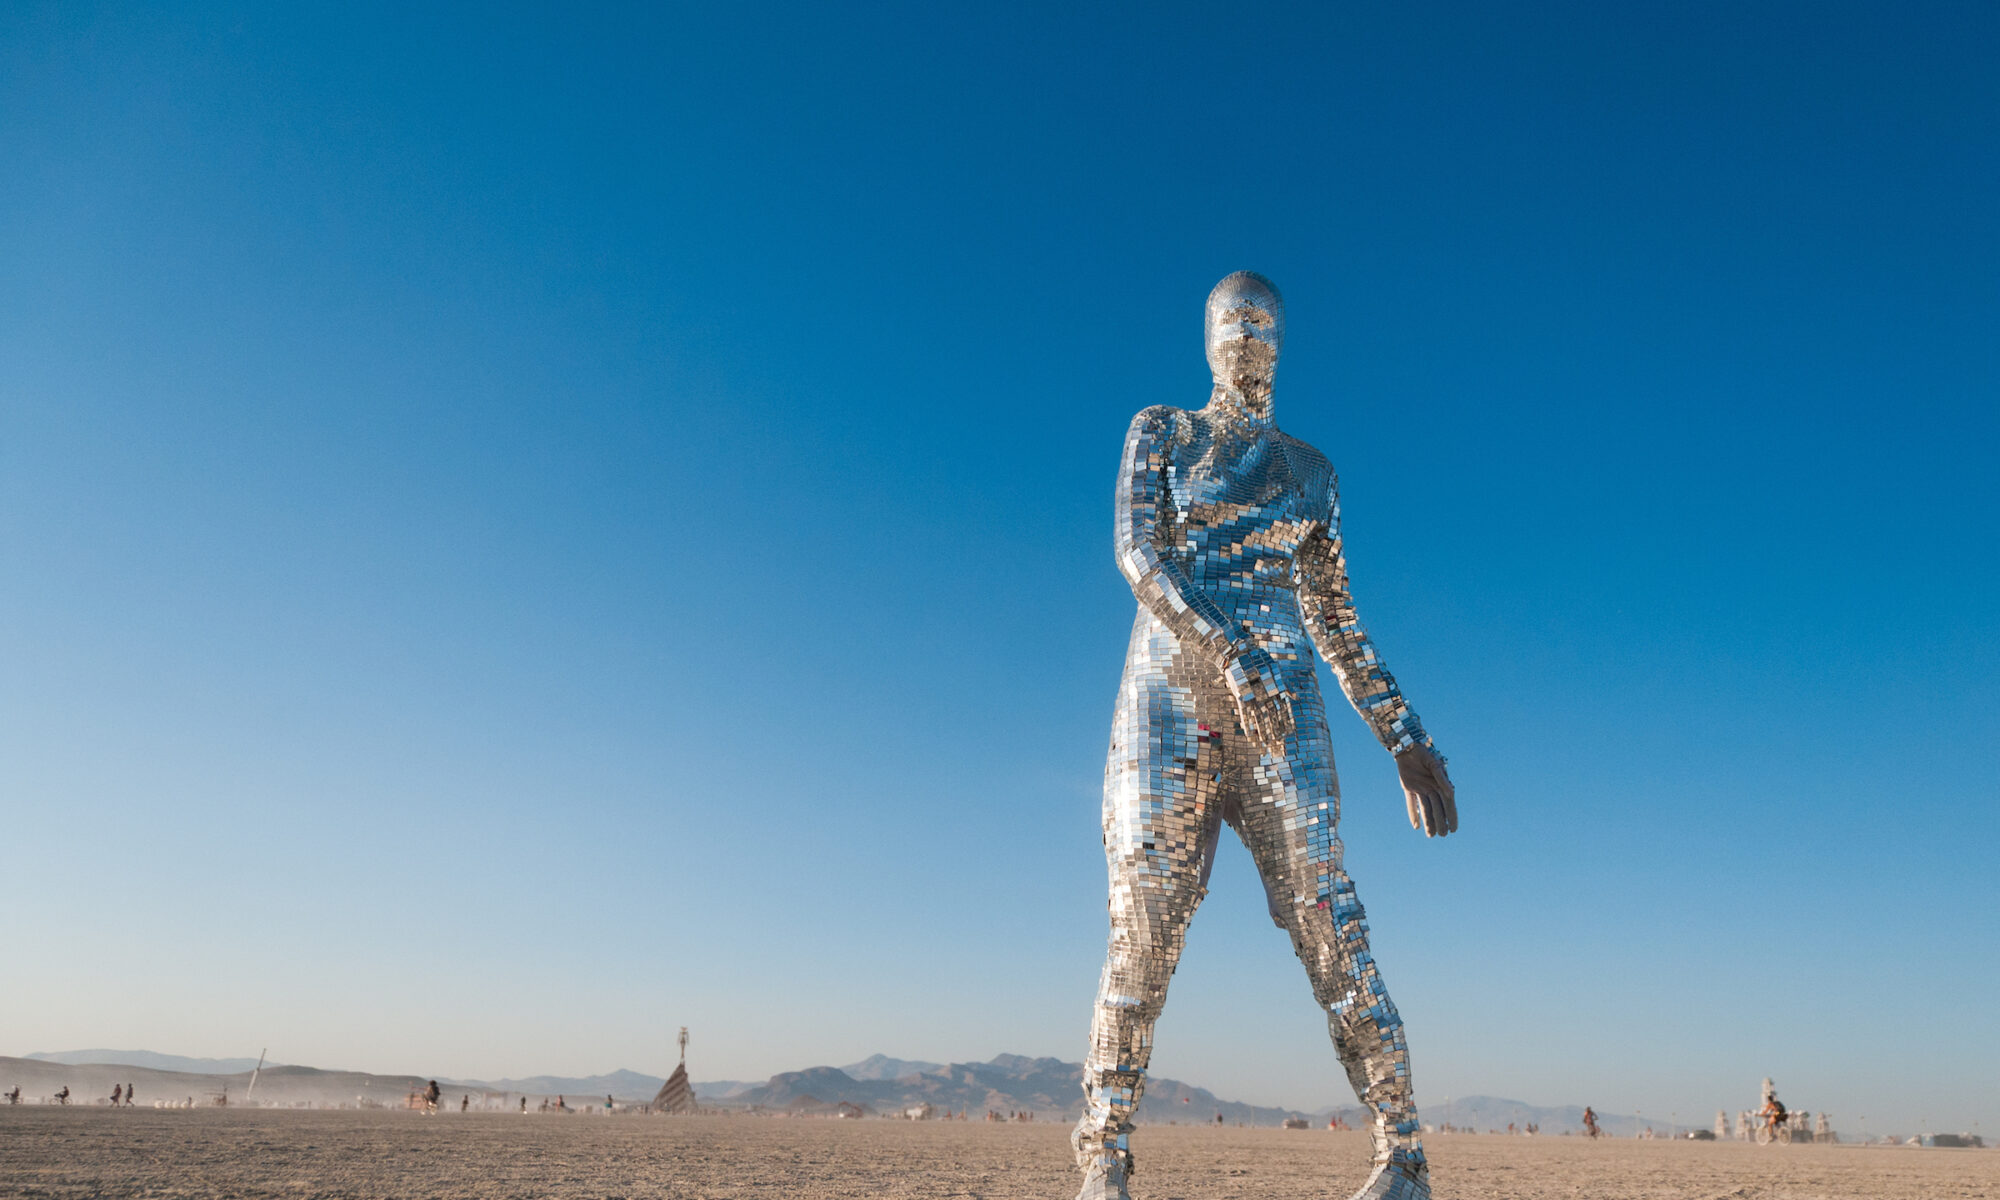 Liberating aliens, burning men, and the glory of our freedom to be silly